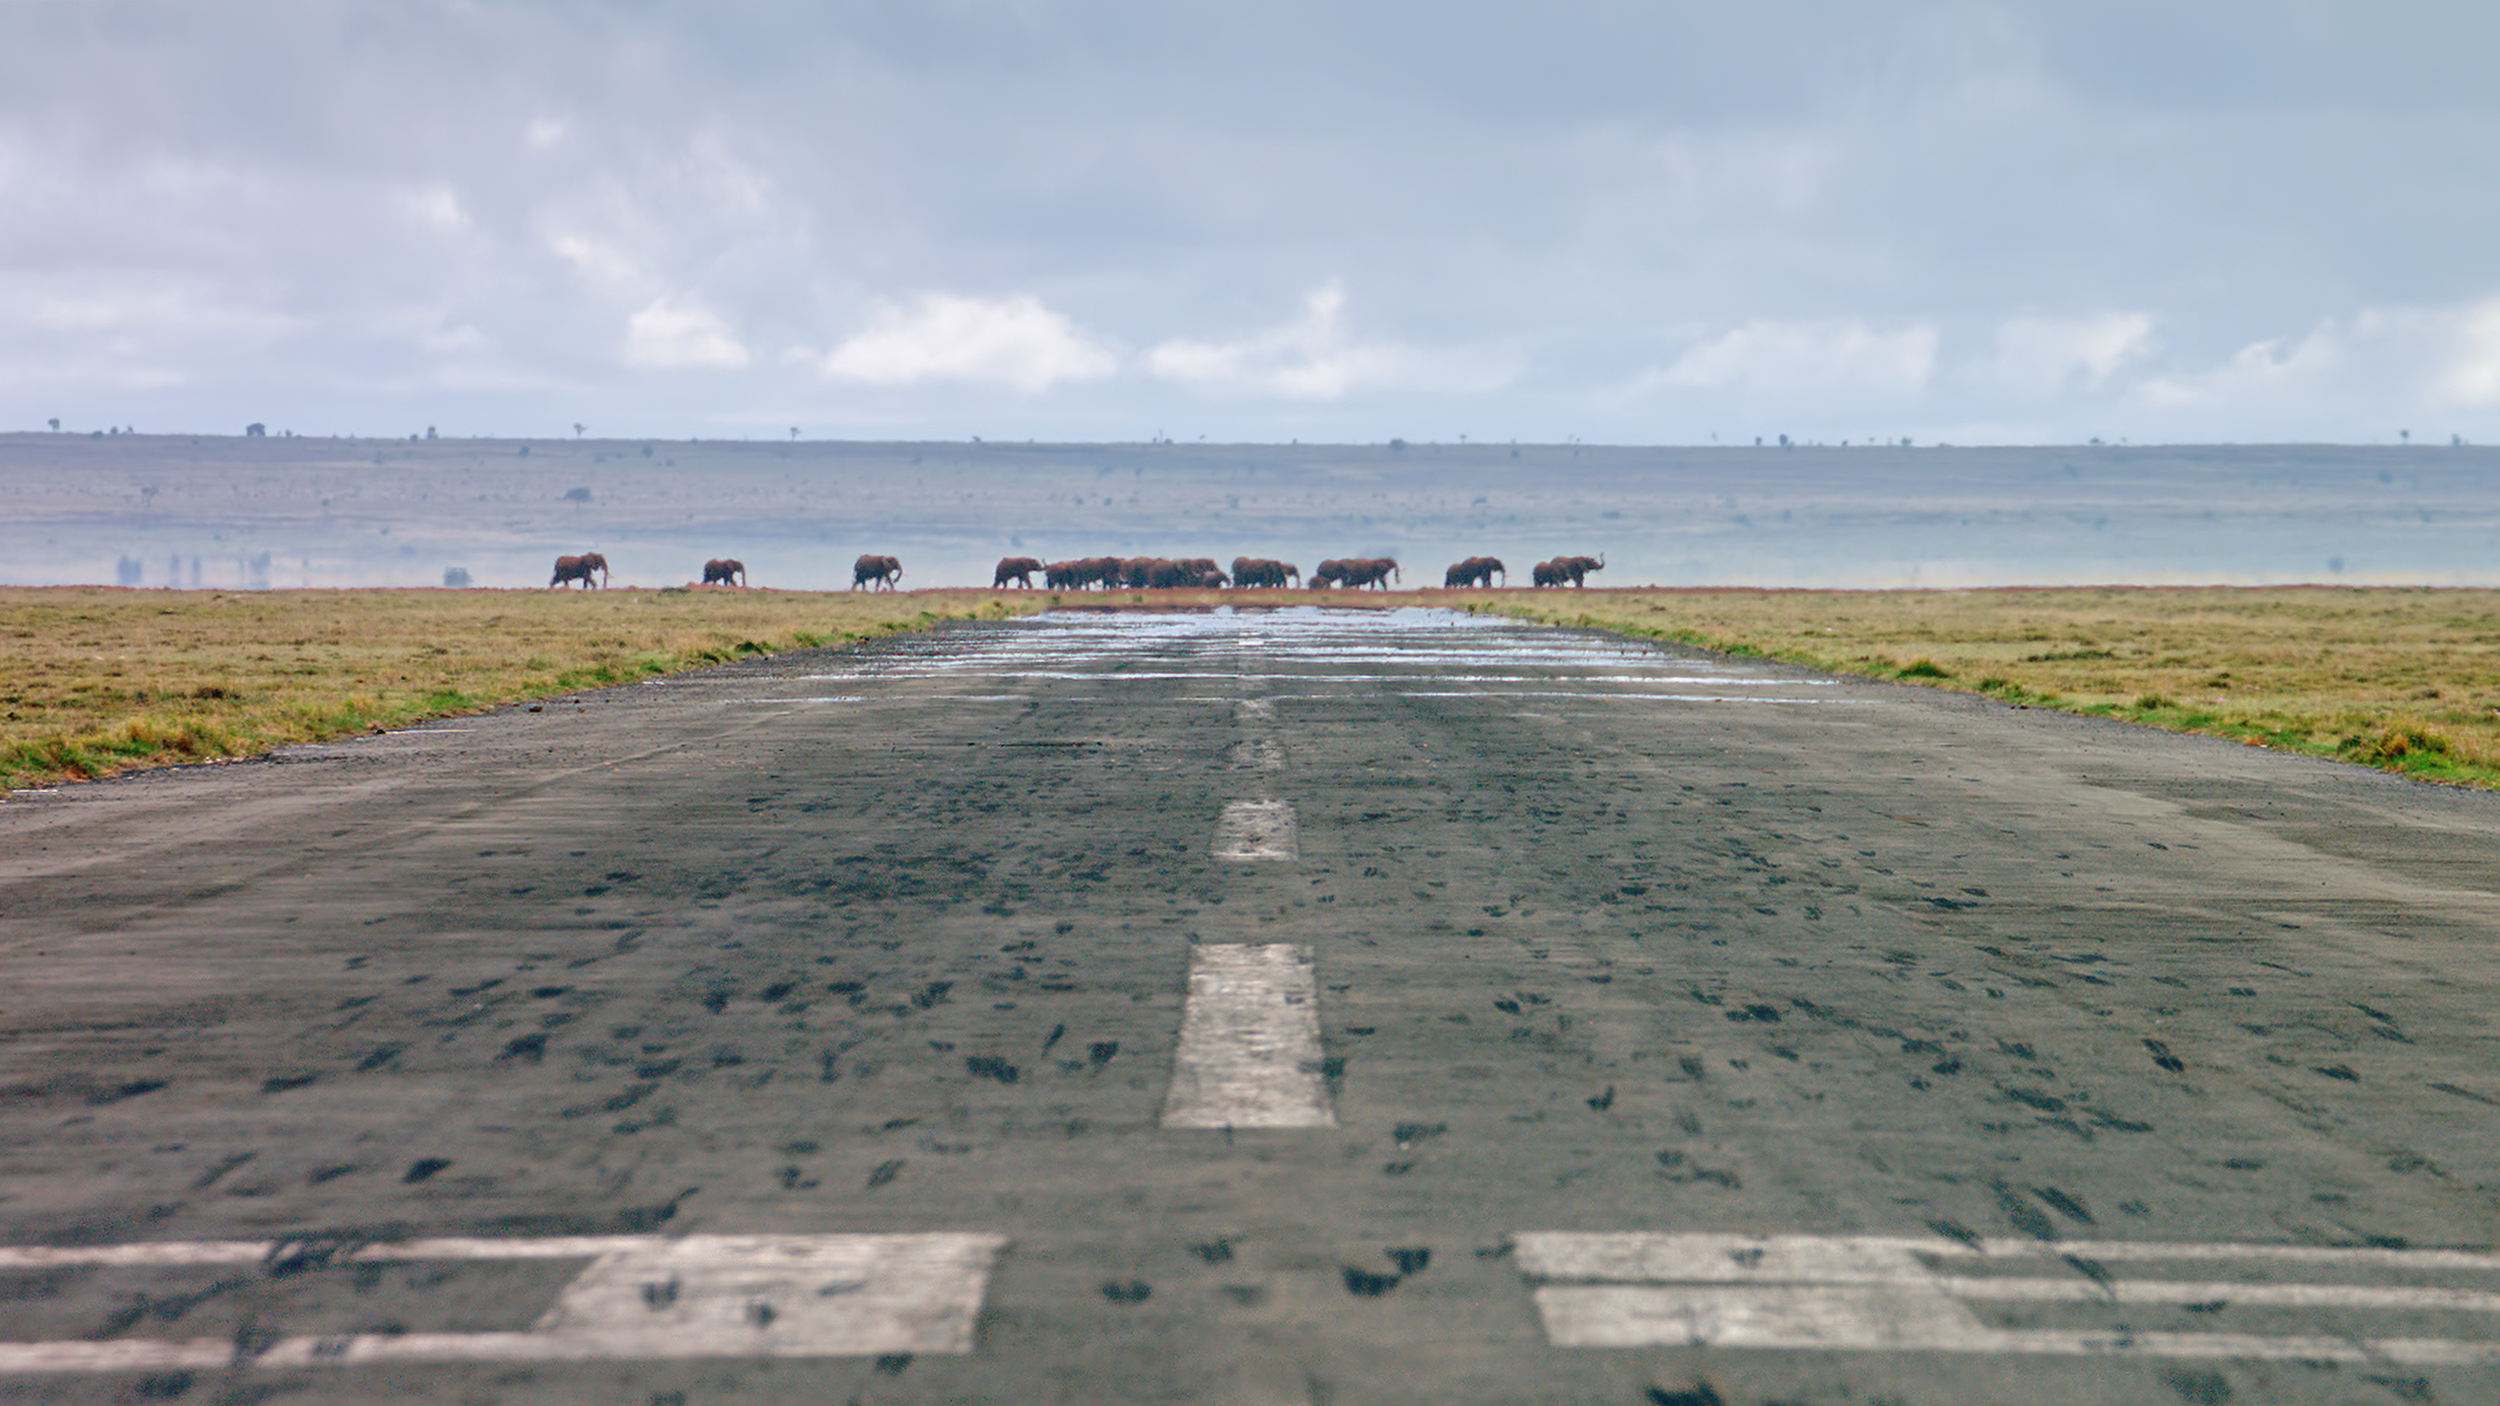 Elephants crossing runway in Kenya, Africa.